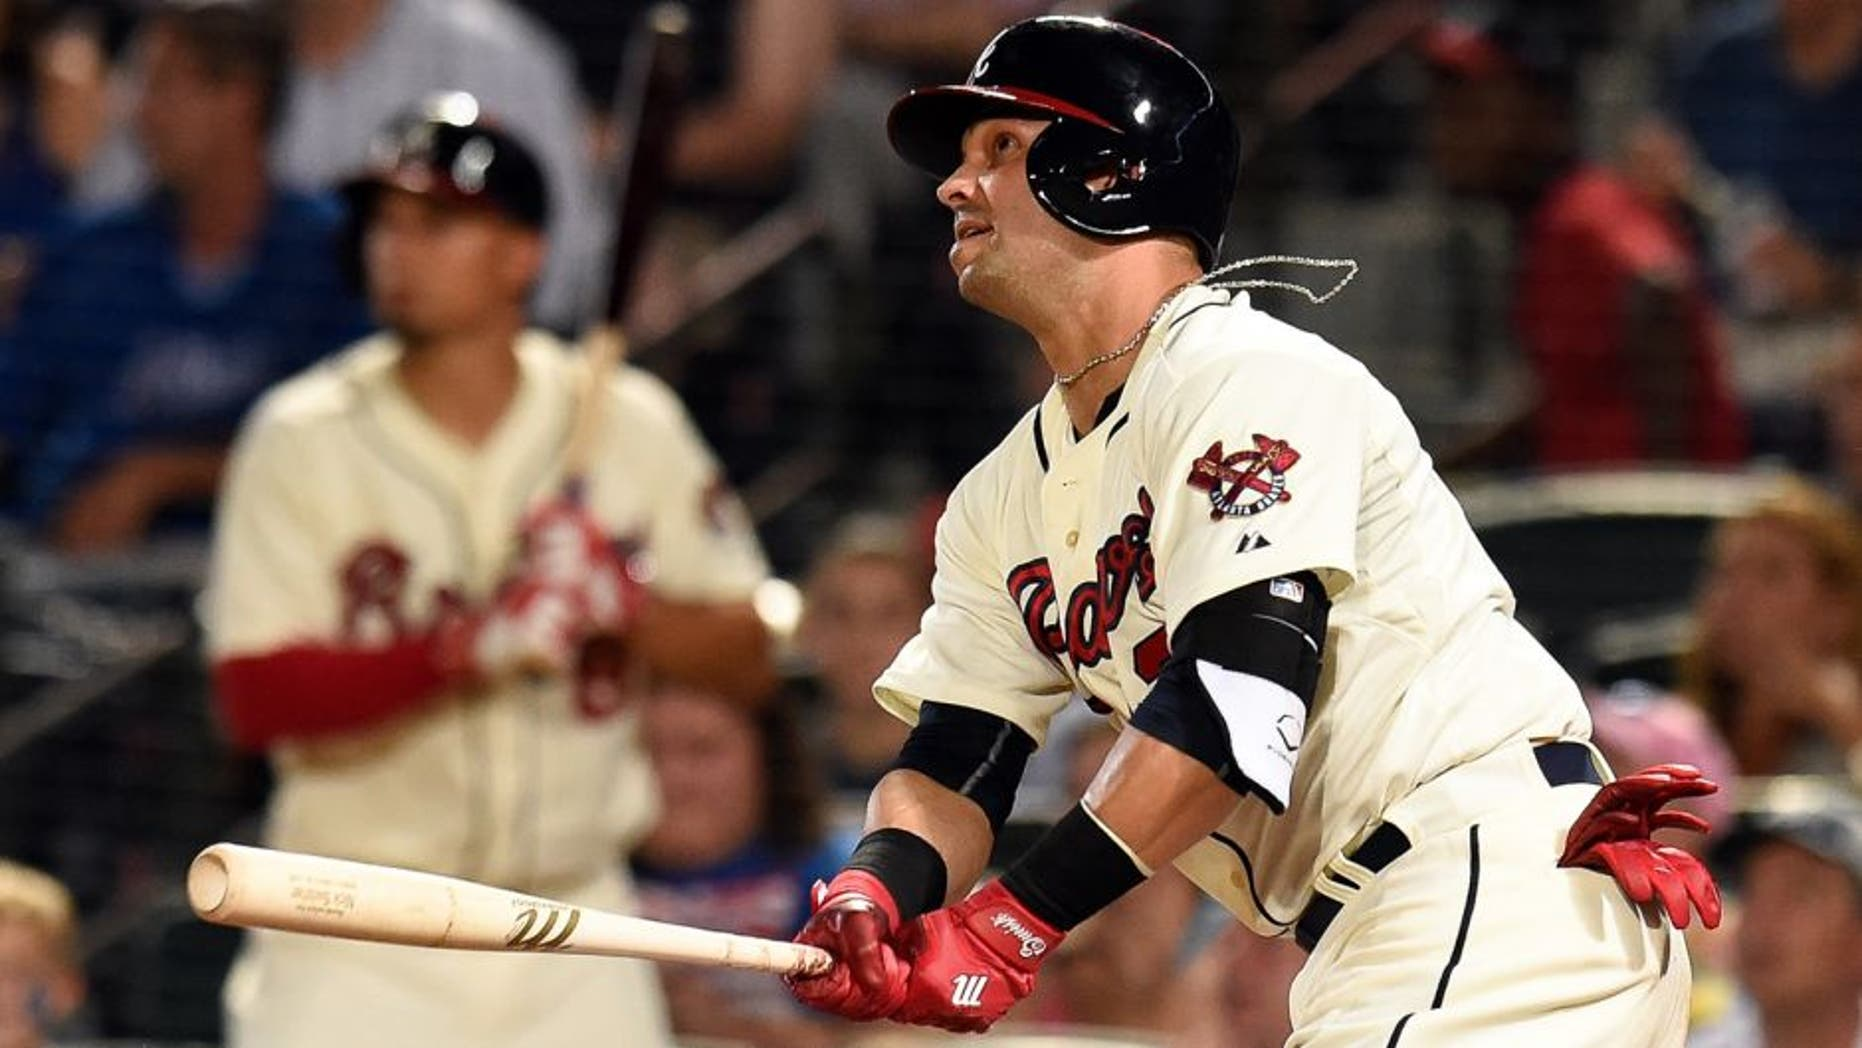 Aug 8, 2015; Atlanta, GA, USA; Atlanta Braves first baseman Nick Swisher (23) drives in two runs with a double against the Miami Marlins during the seventh inning at Turner Field. Mandatory Credit: Dale Zanine-USA TODAY Sports